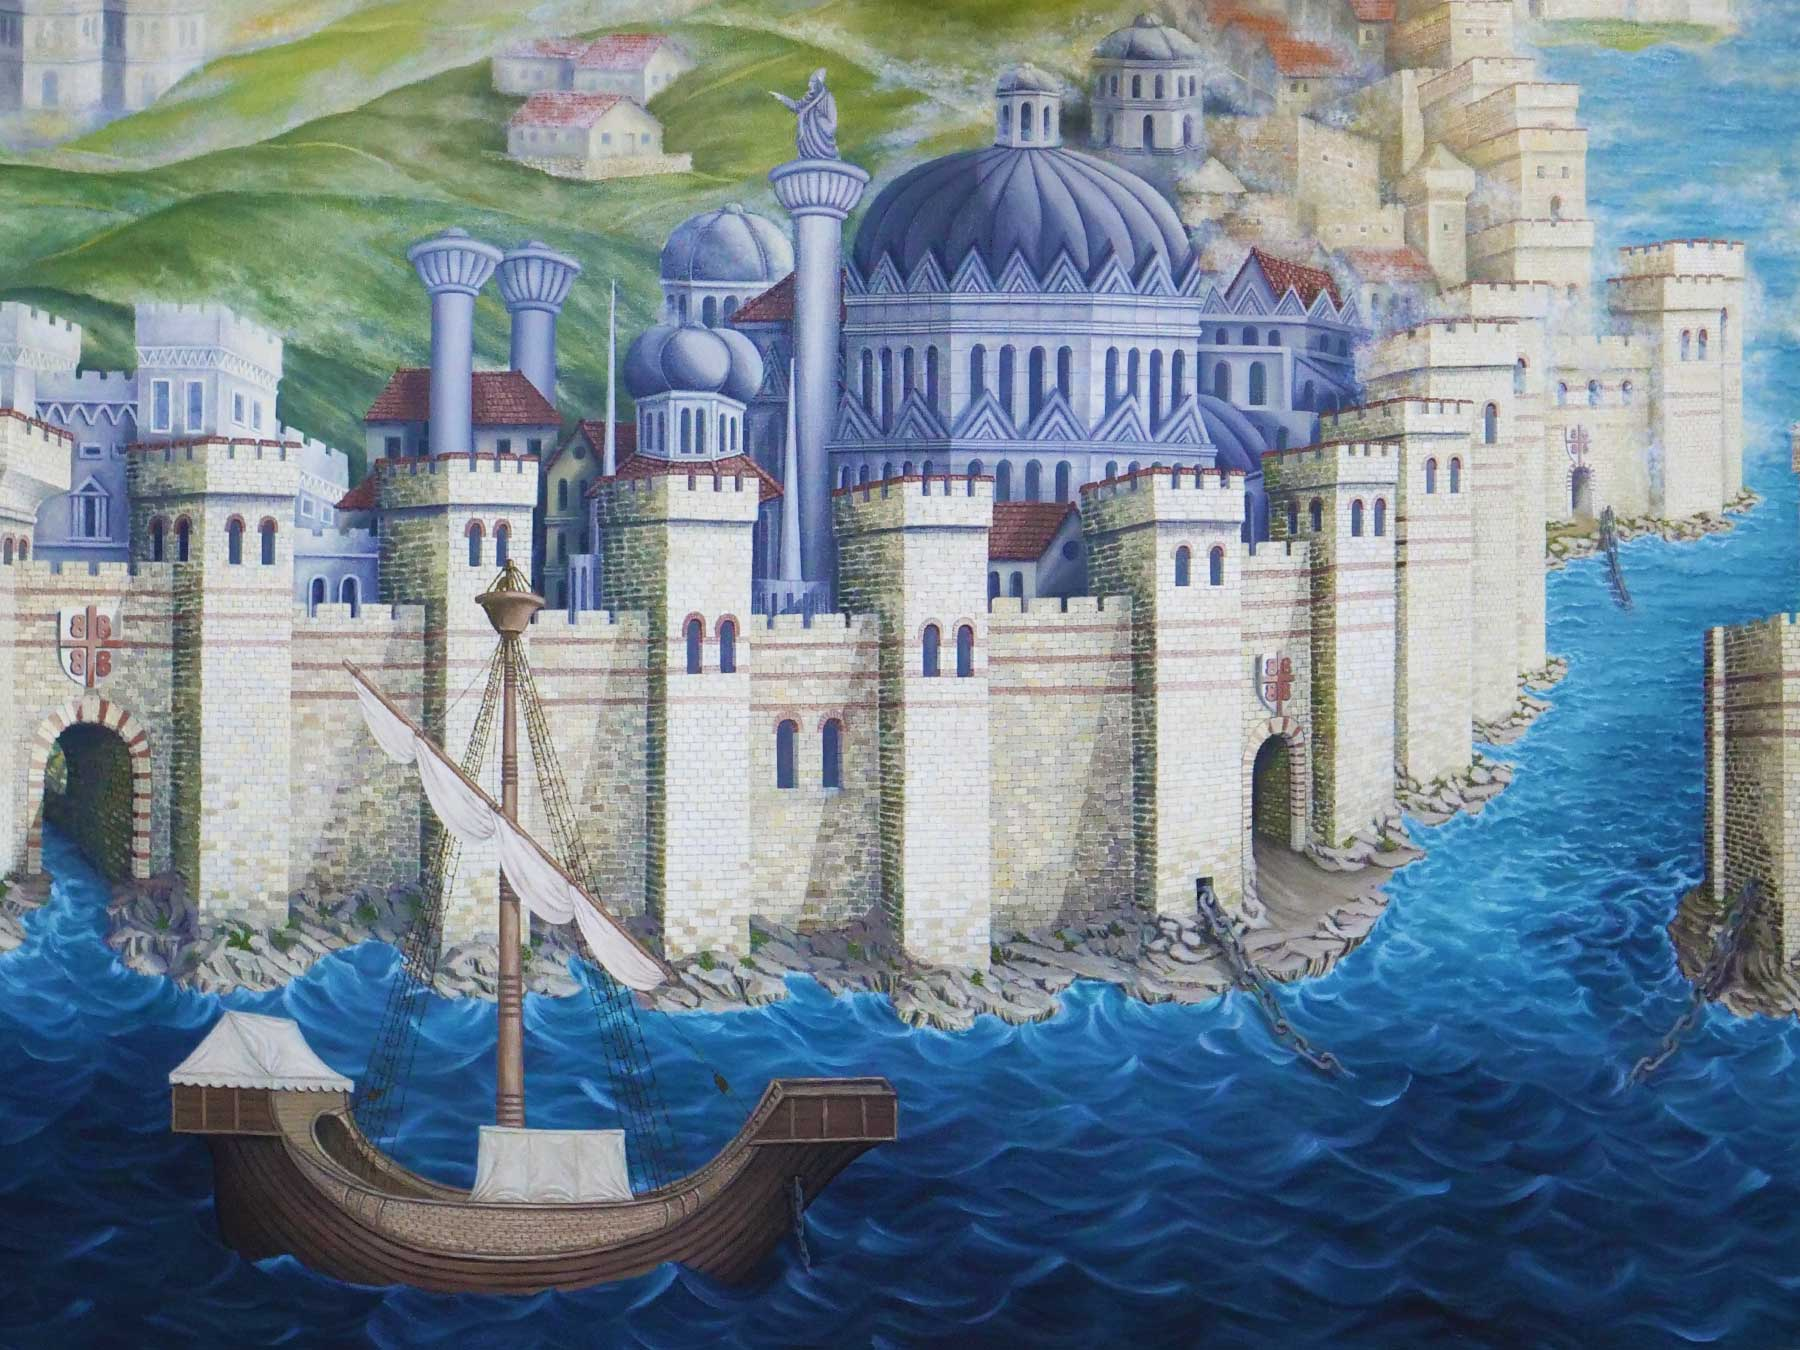 Painting by Sirinoz 1994 | Based on Schedel 1493 Engraving of Byzantine Istanbul Turkey | Chain across the Golden Horn | Professor Steven A Martin